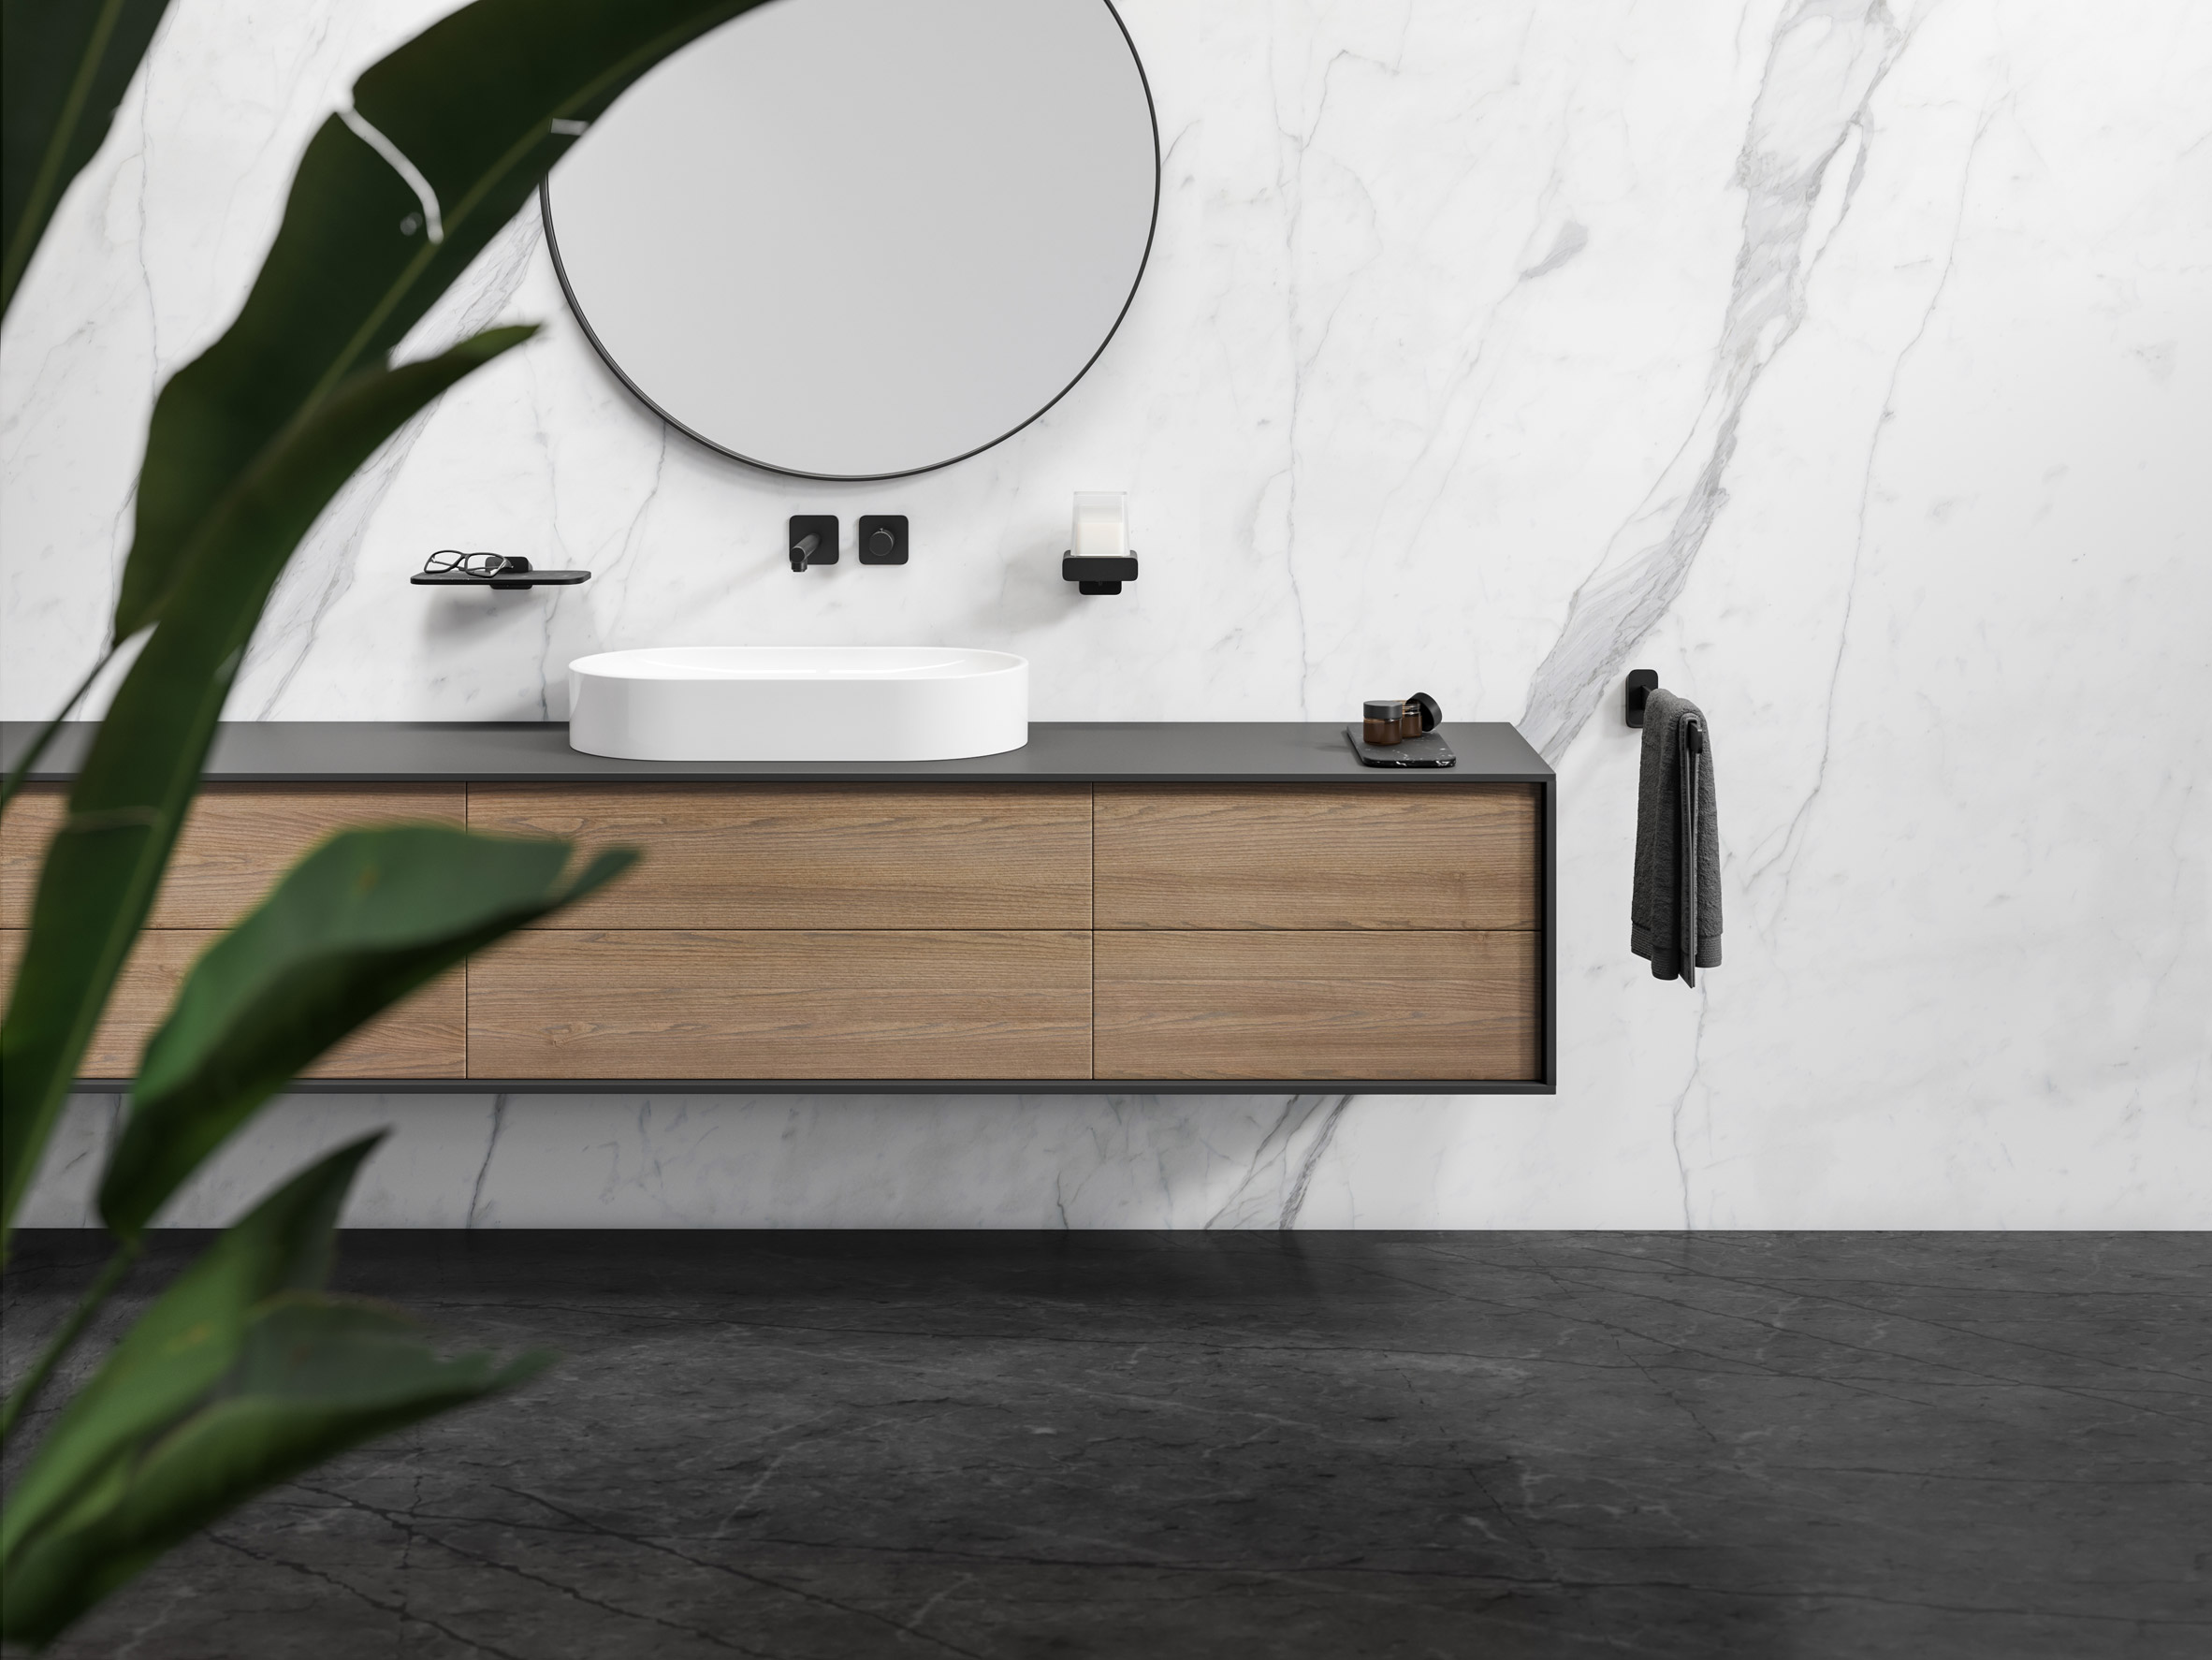 The Shift 45-centimetre towel rail fixed perpendicular to the wall